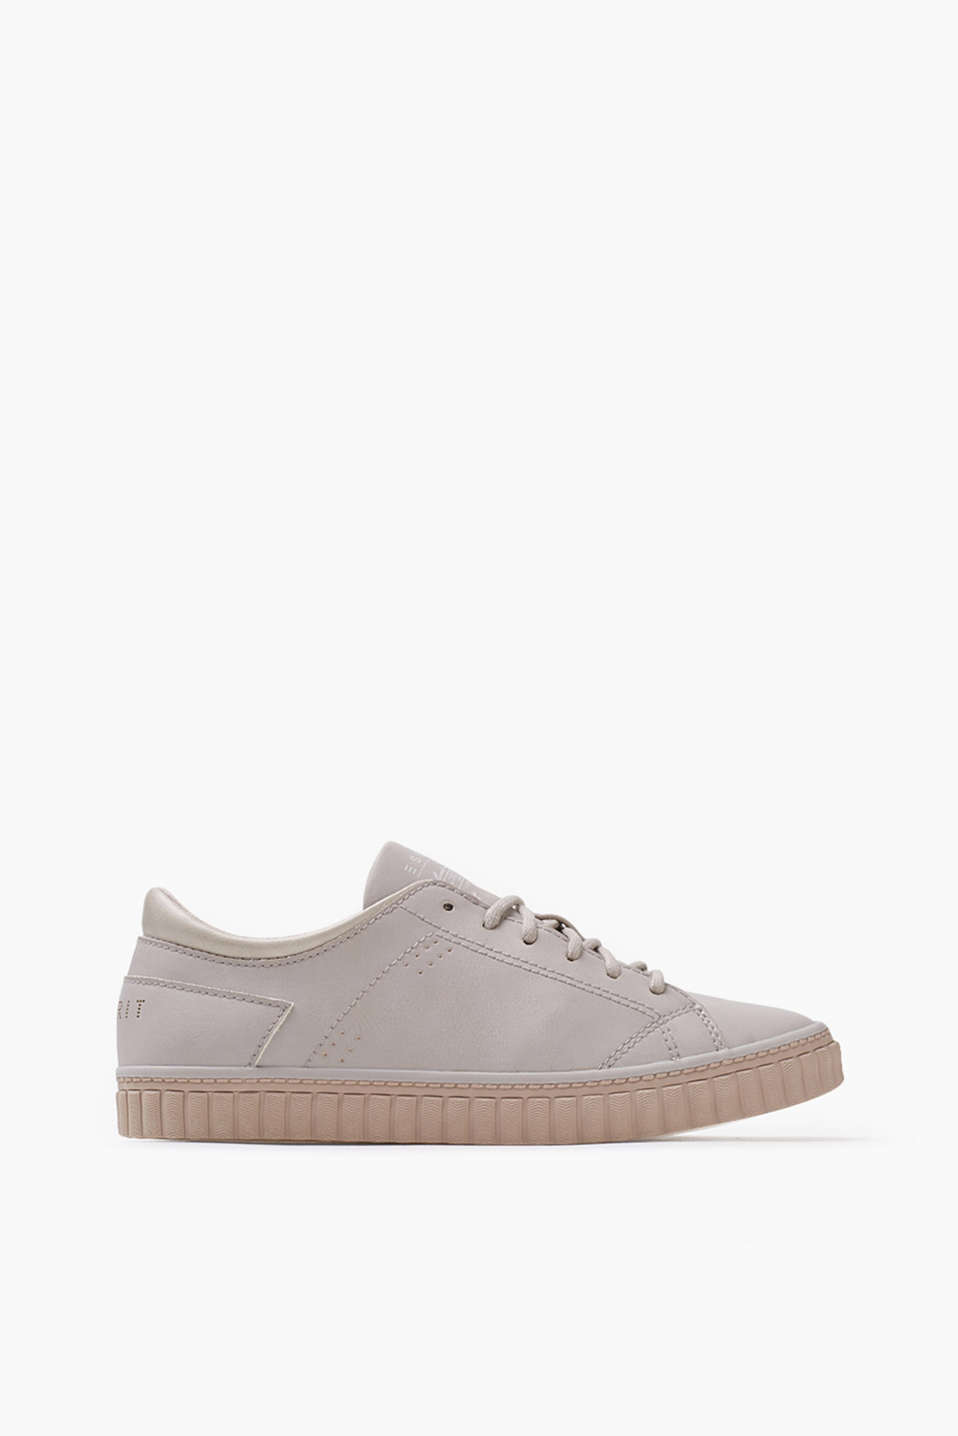 For a sporty, modern style: lace-up trainers in smooth imitation leather, with a rubber sole